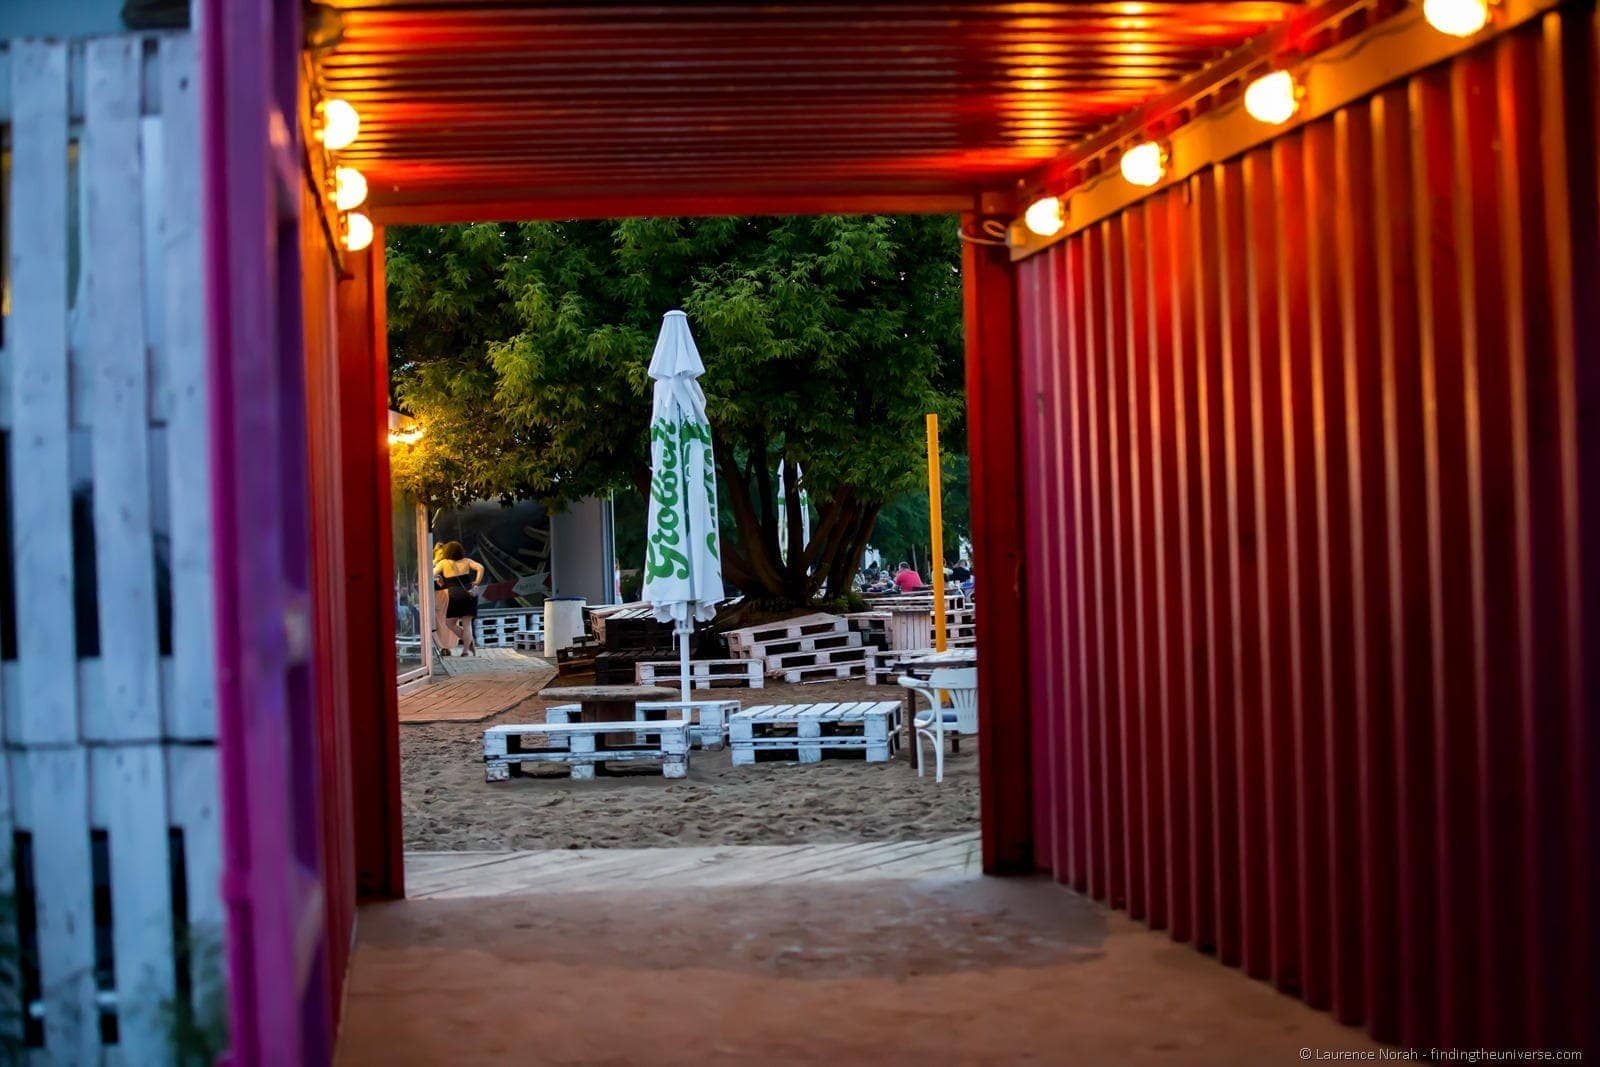 Poznan entrance to KontenerArt